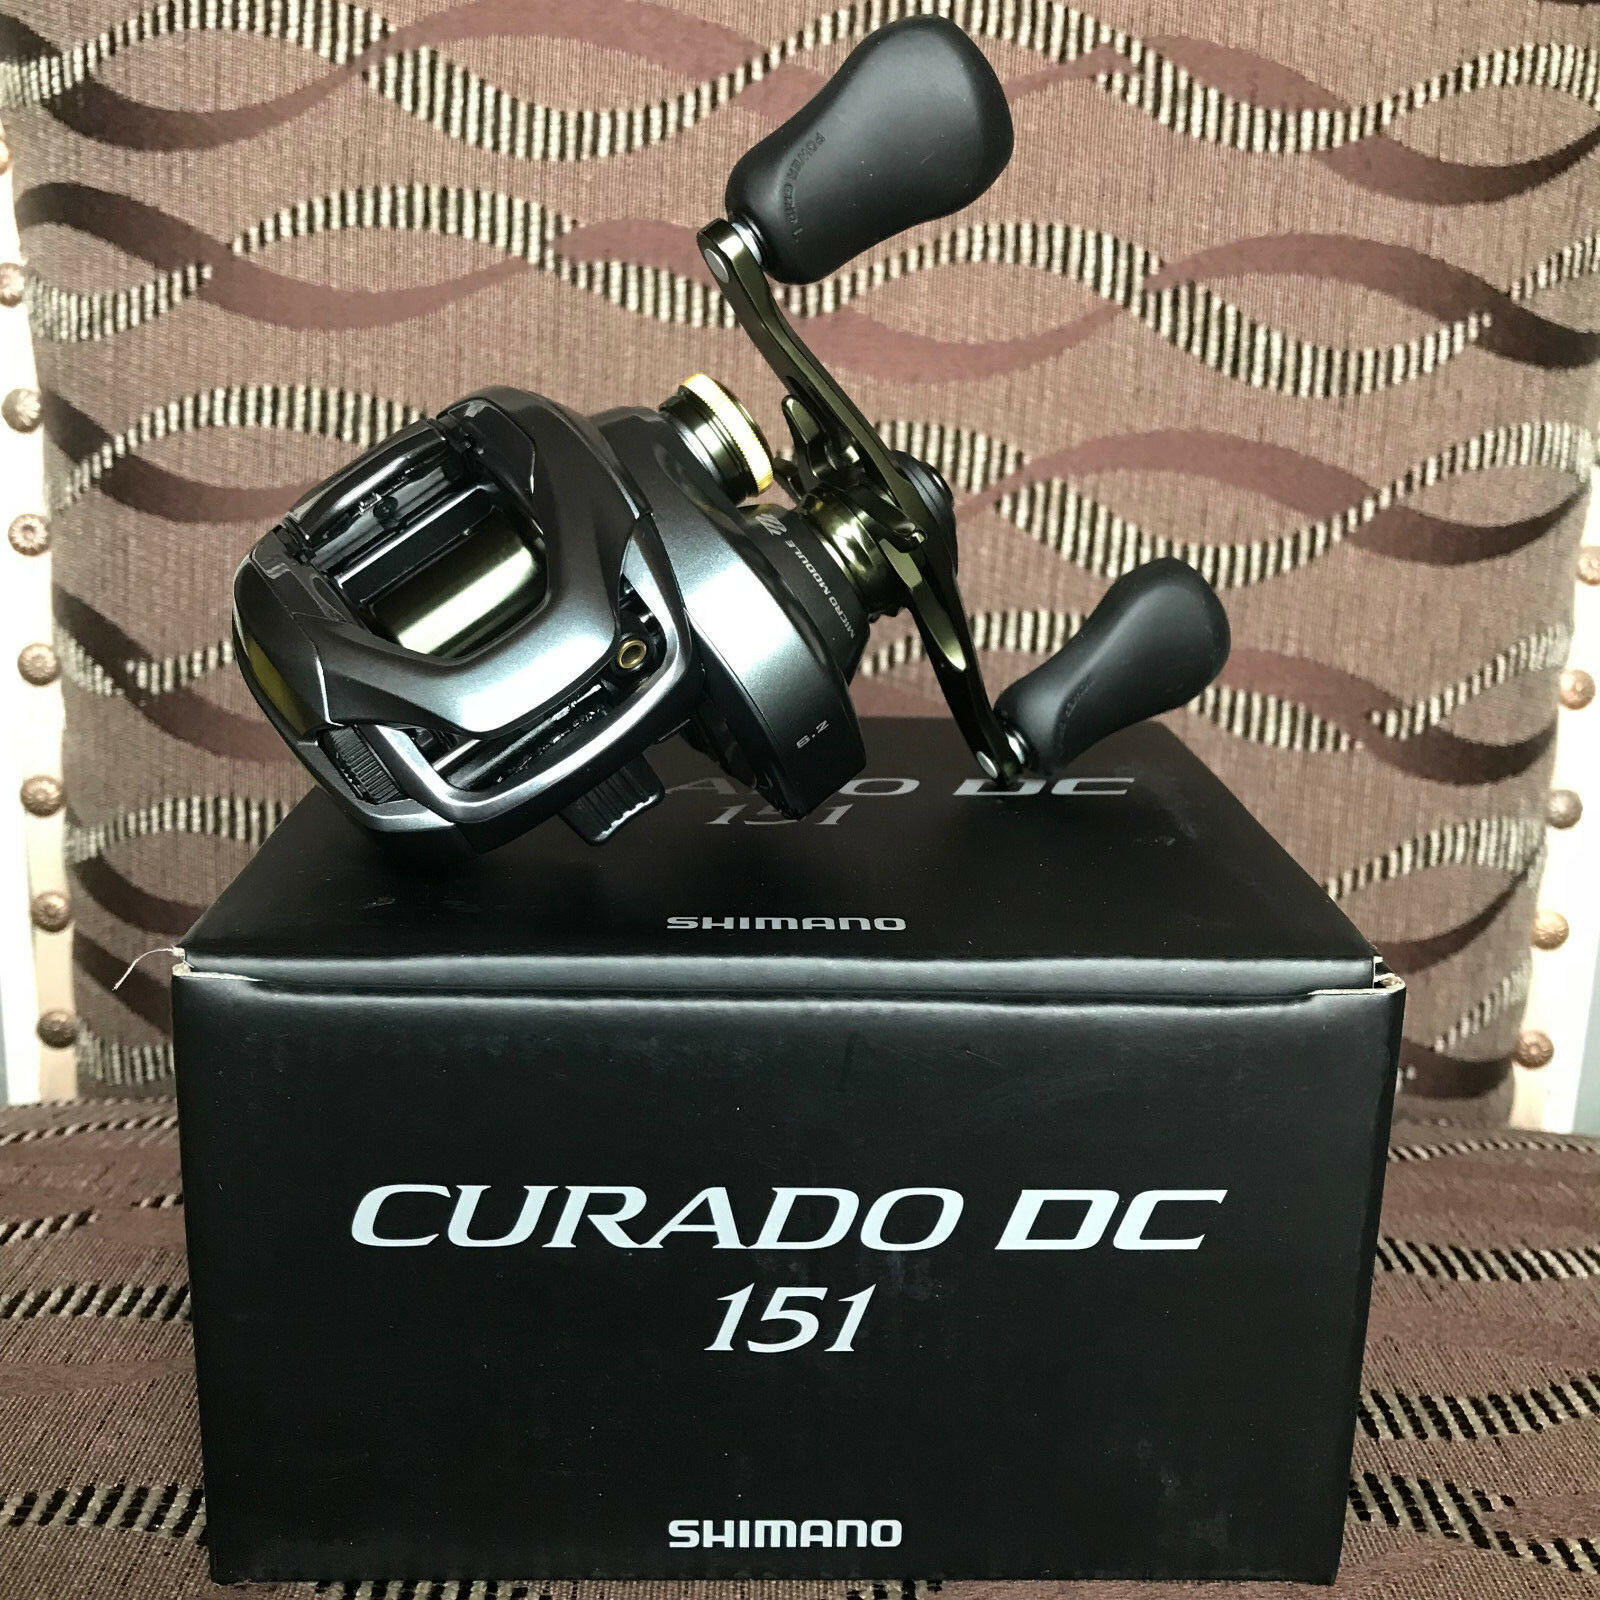 Shimano Curado DC 151 Linkshand Baitcastrolle NEW 2018 Model